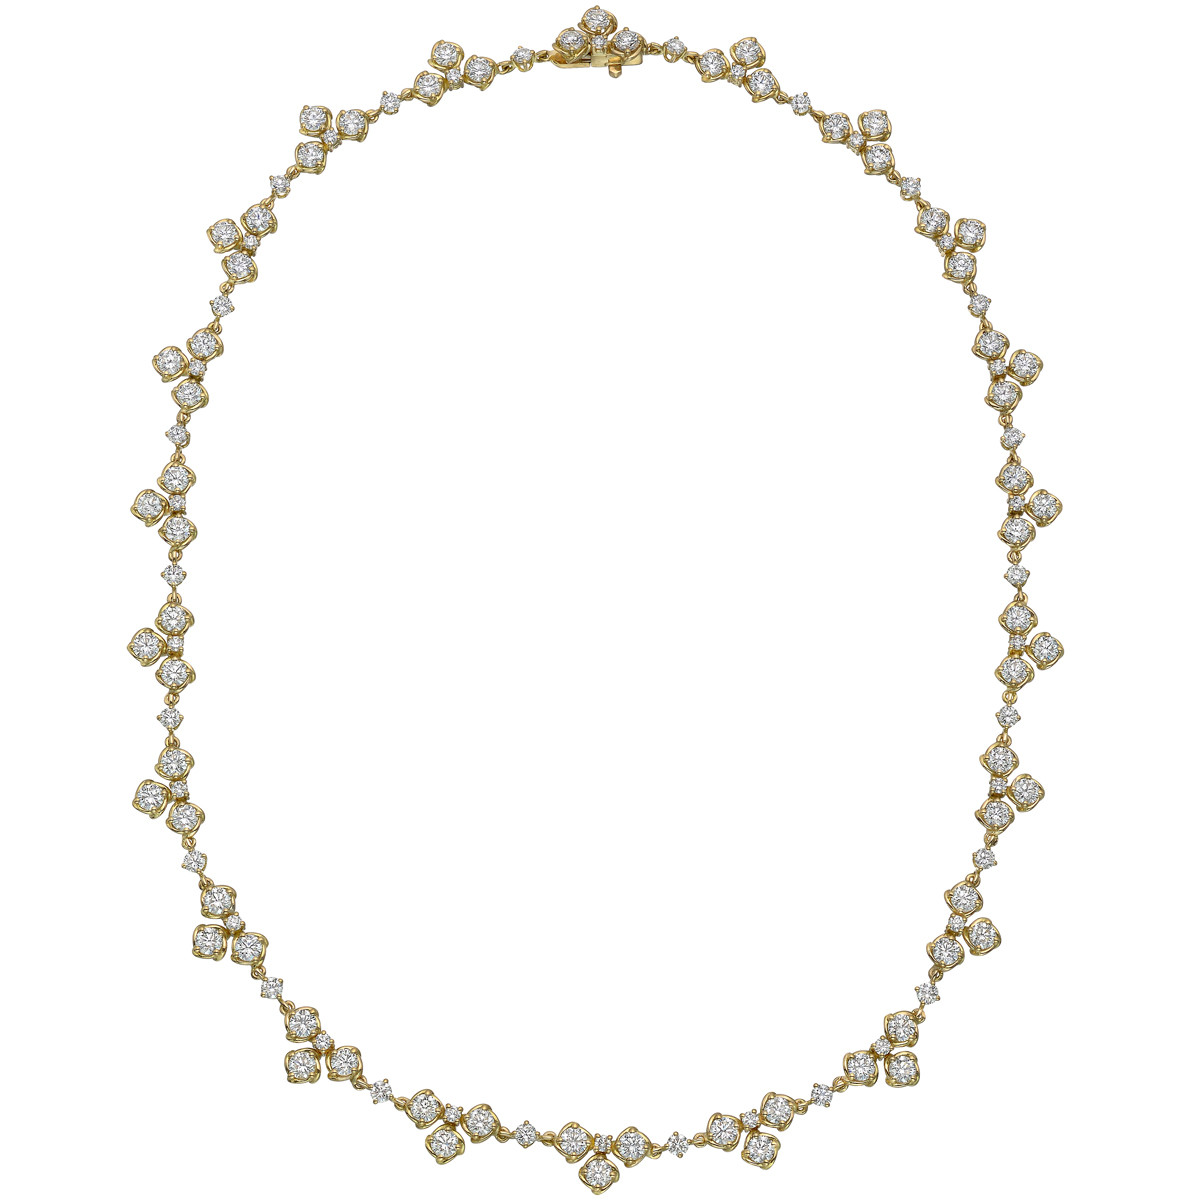 18k Yellow Gold & Diamond Cluster Necklace